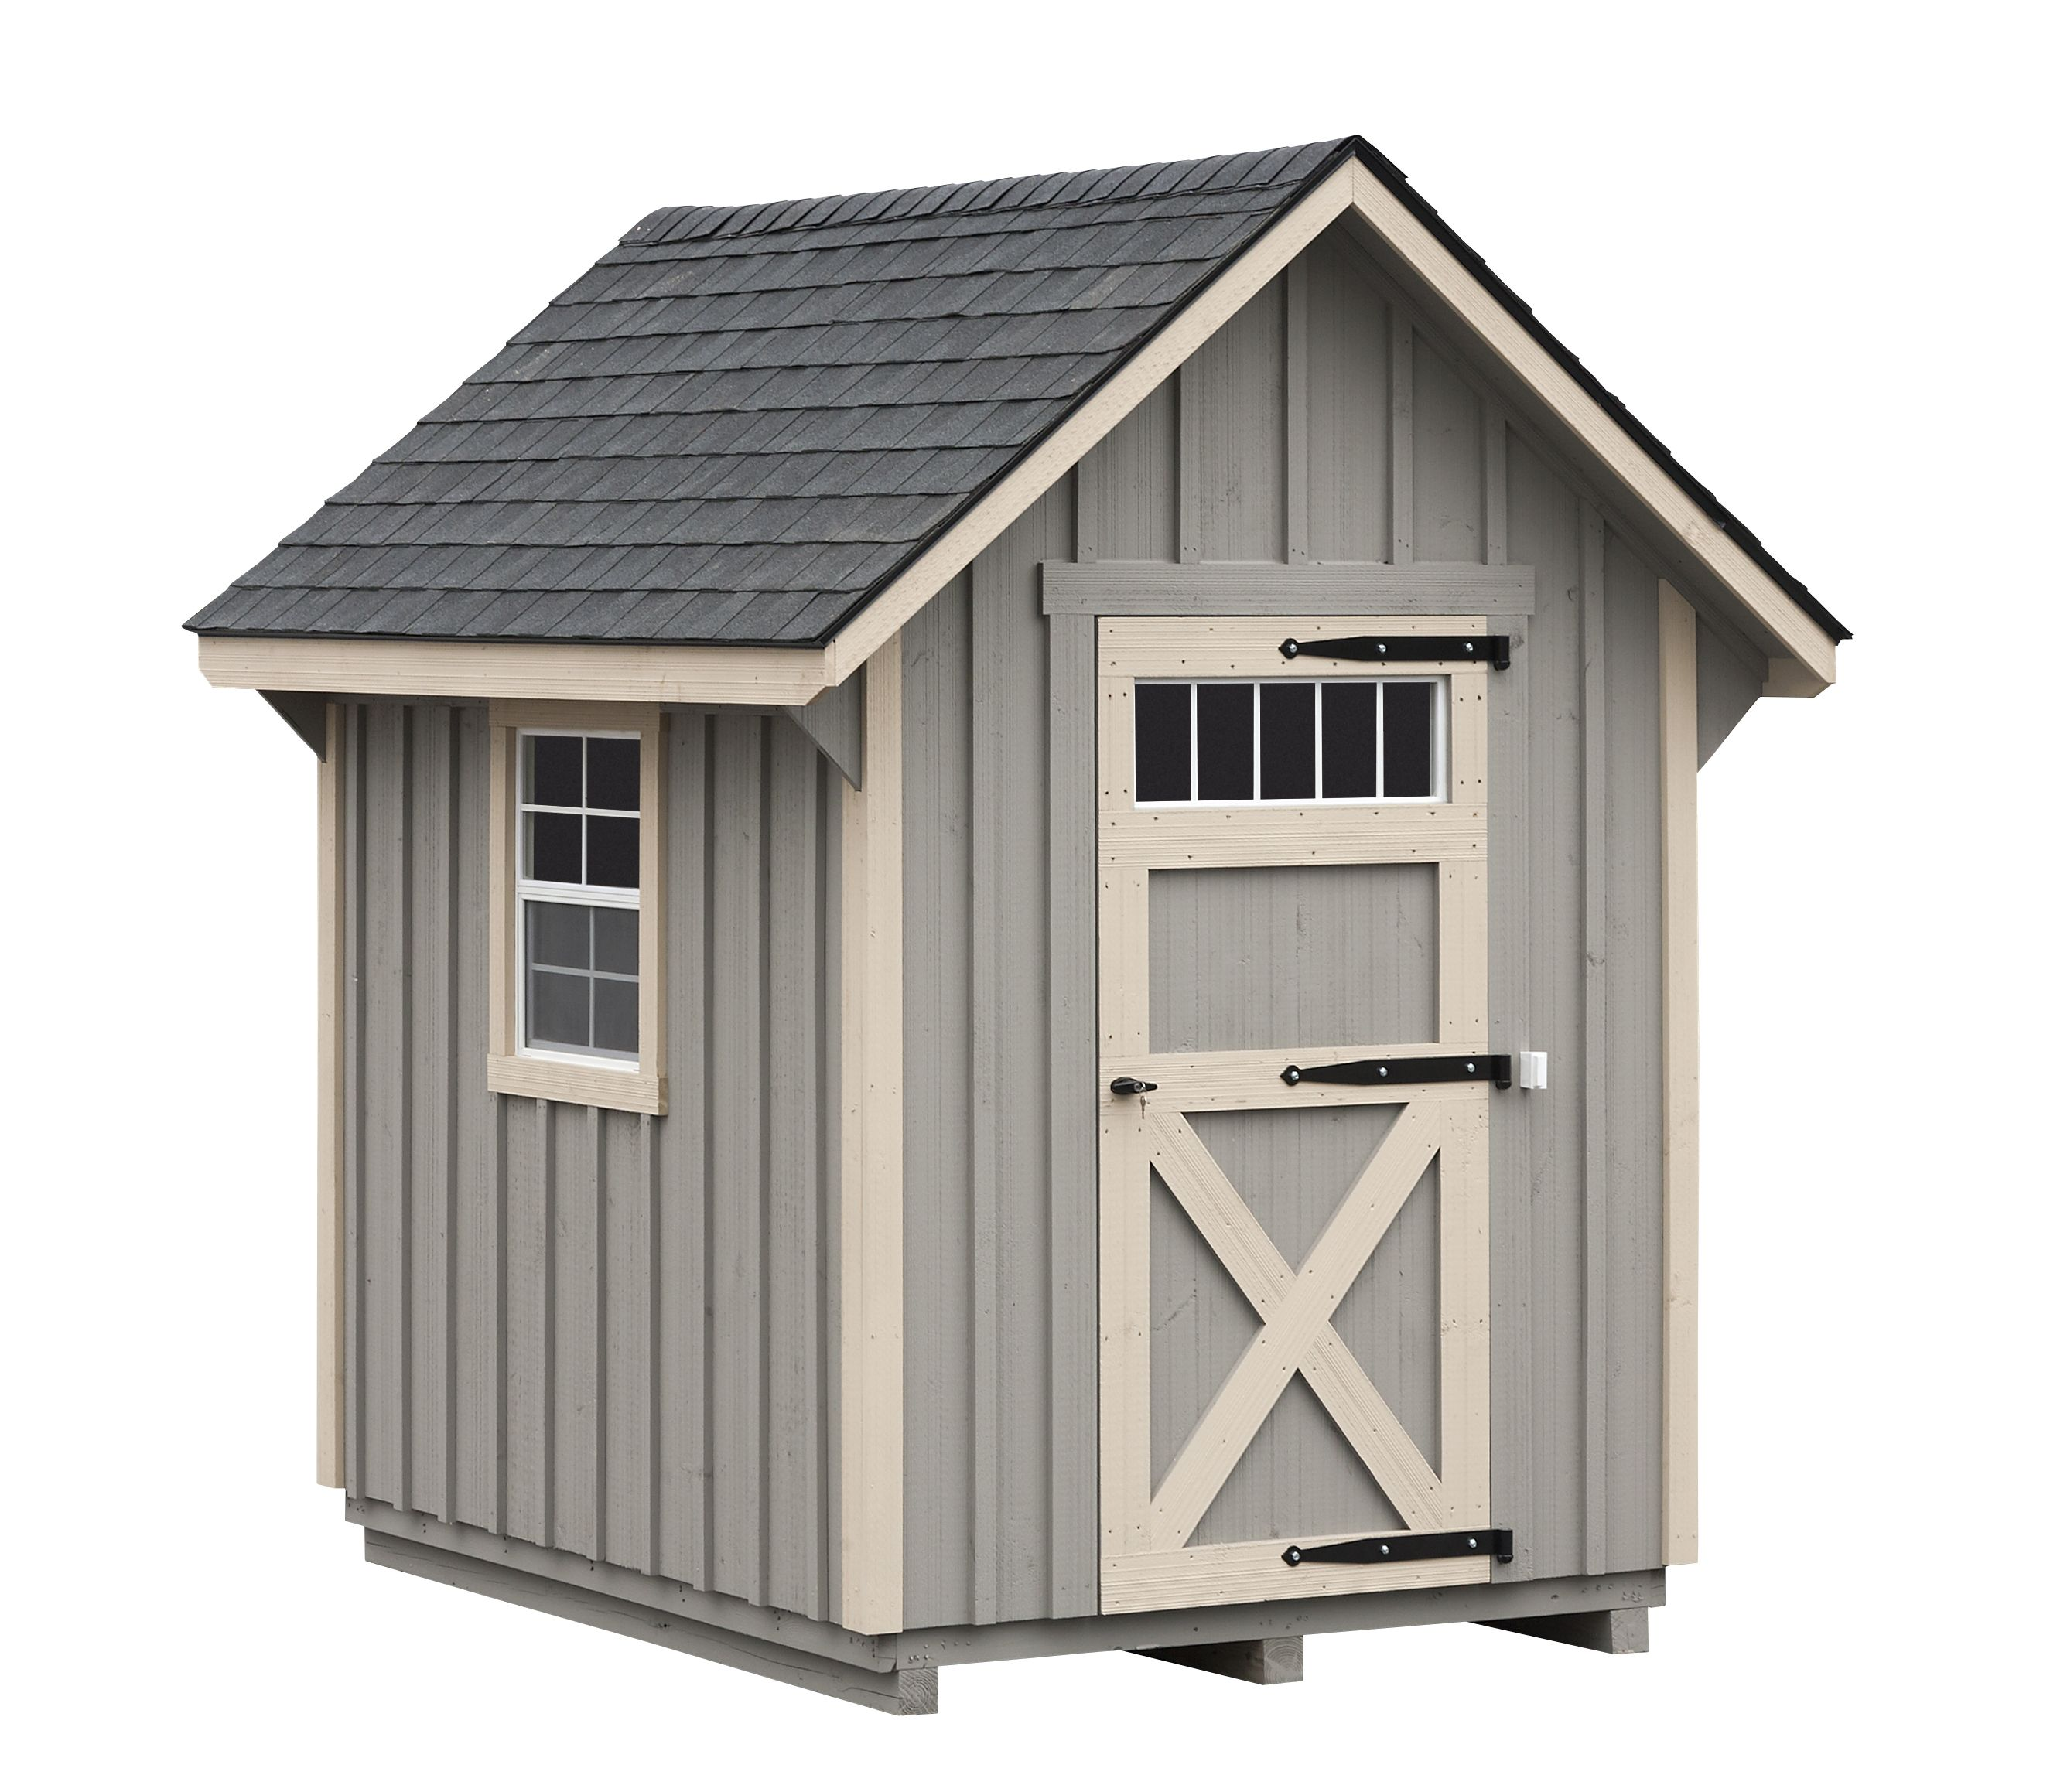 4x6 pine board and batten storage shed from horizon structures